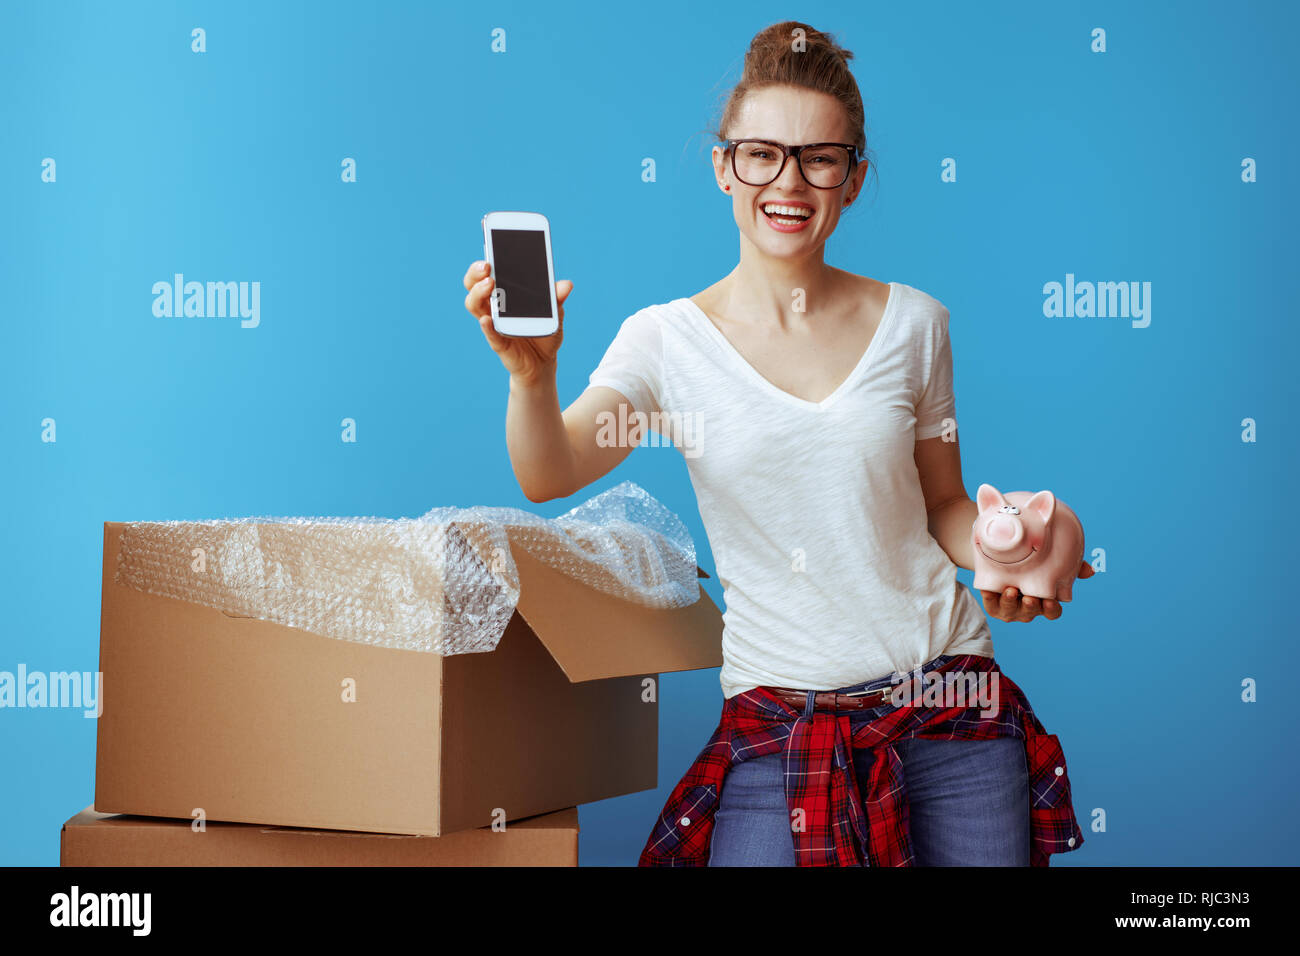 smiling young woman in white t-shirt with piggybank showing phone blank screen near cardboard box isolated on blue. Call professional movers and obtai - Stock Image